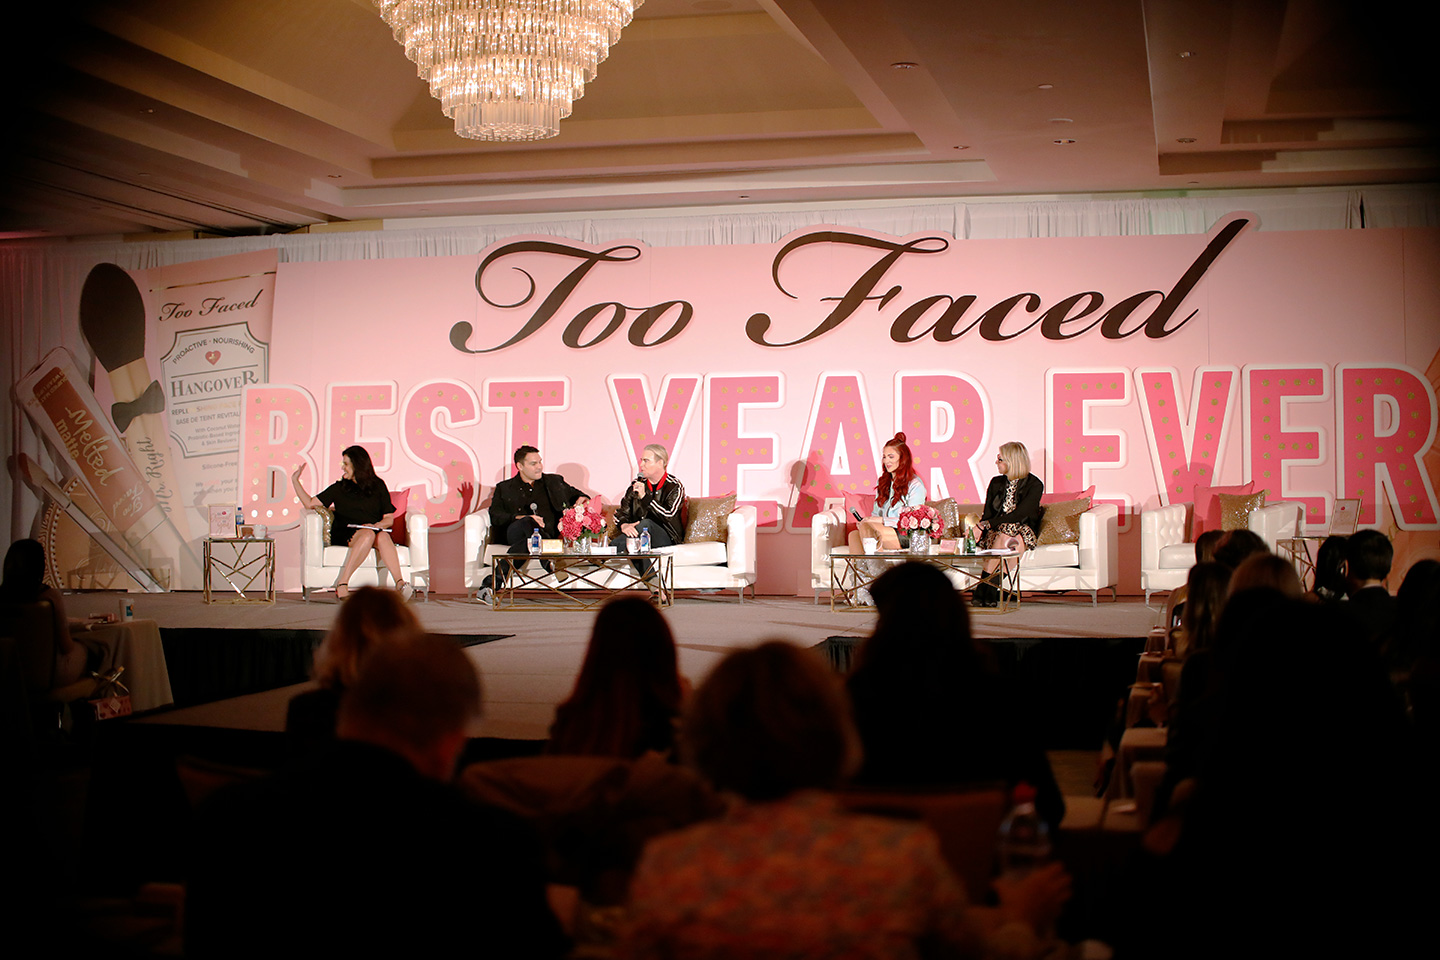 Photo Credit: Too Faced